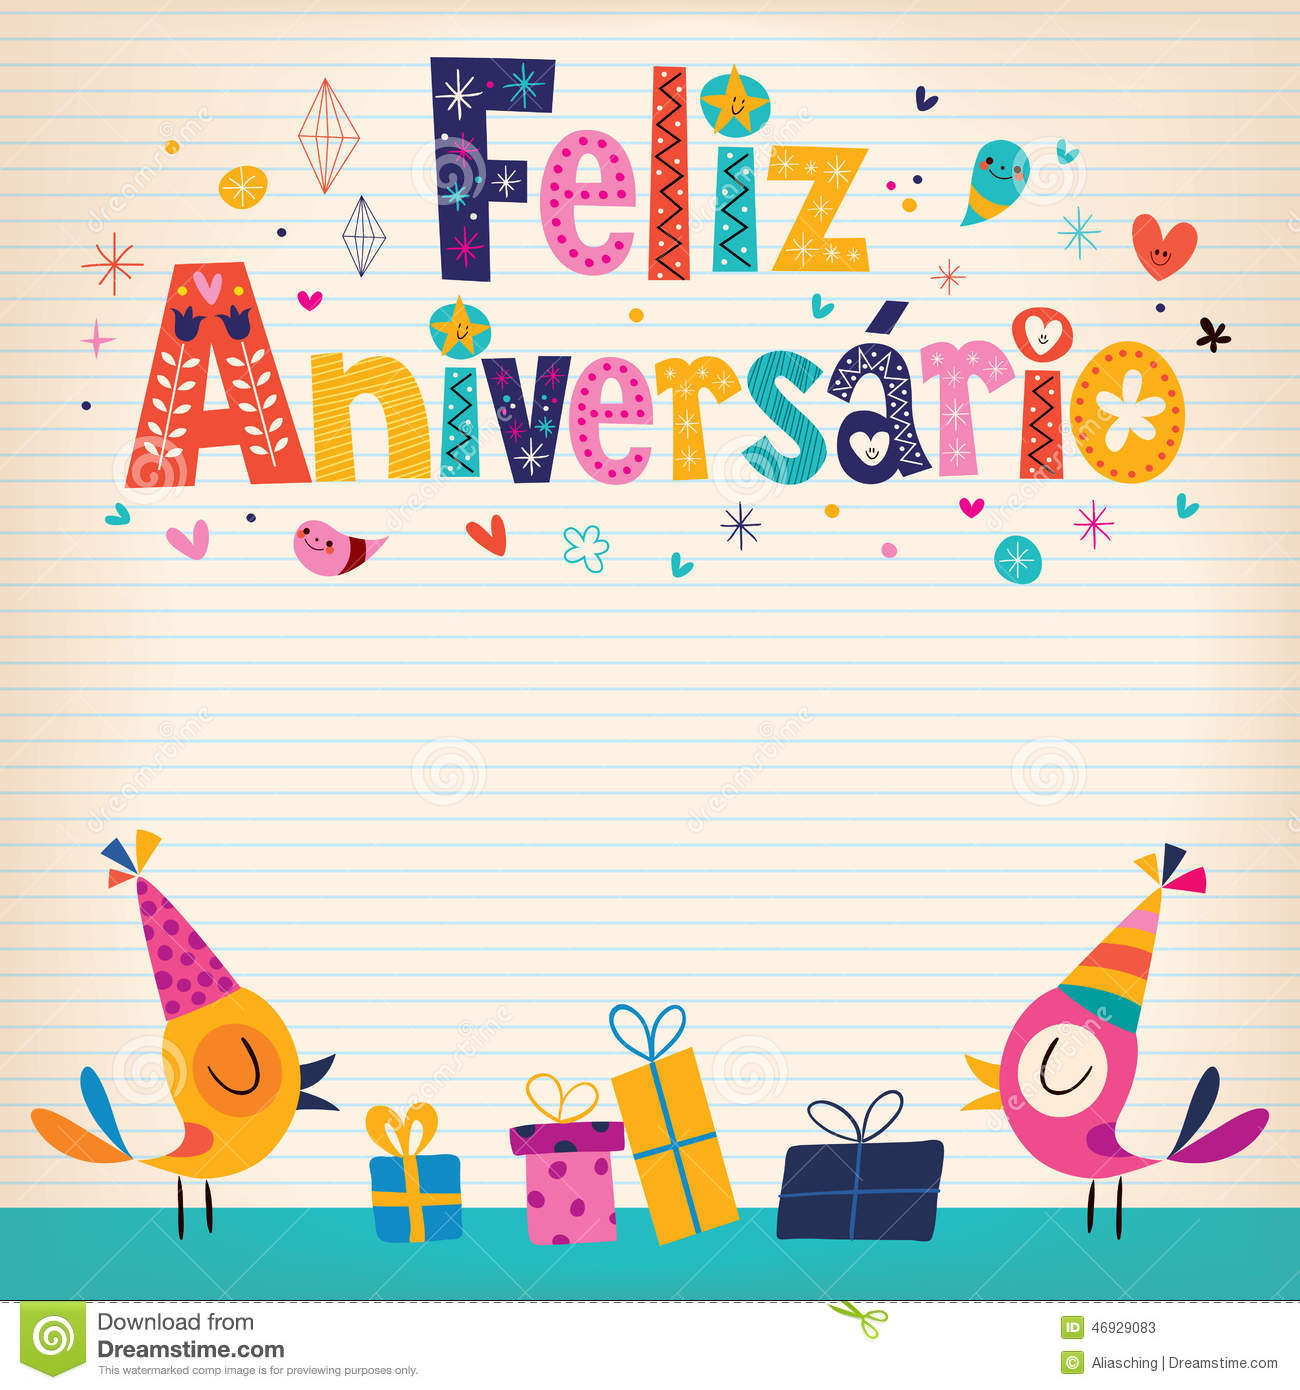 House Plan Design Feliz Aniversario Portuguese Happy Birthday Card Stock